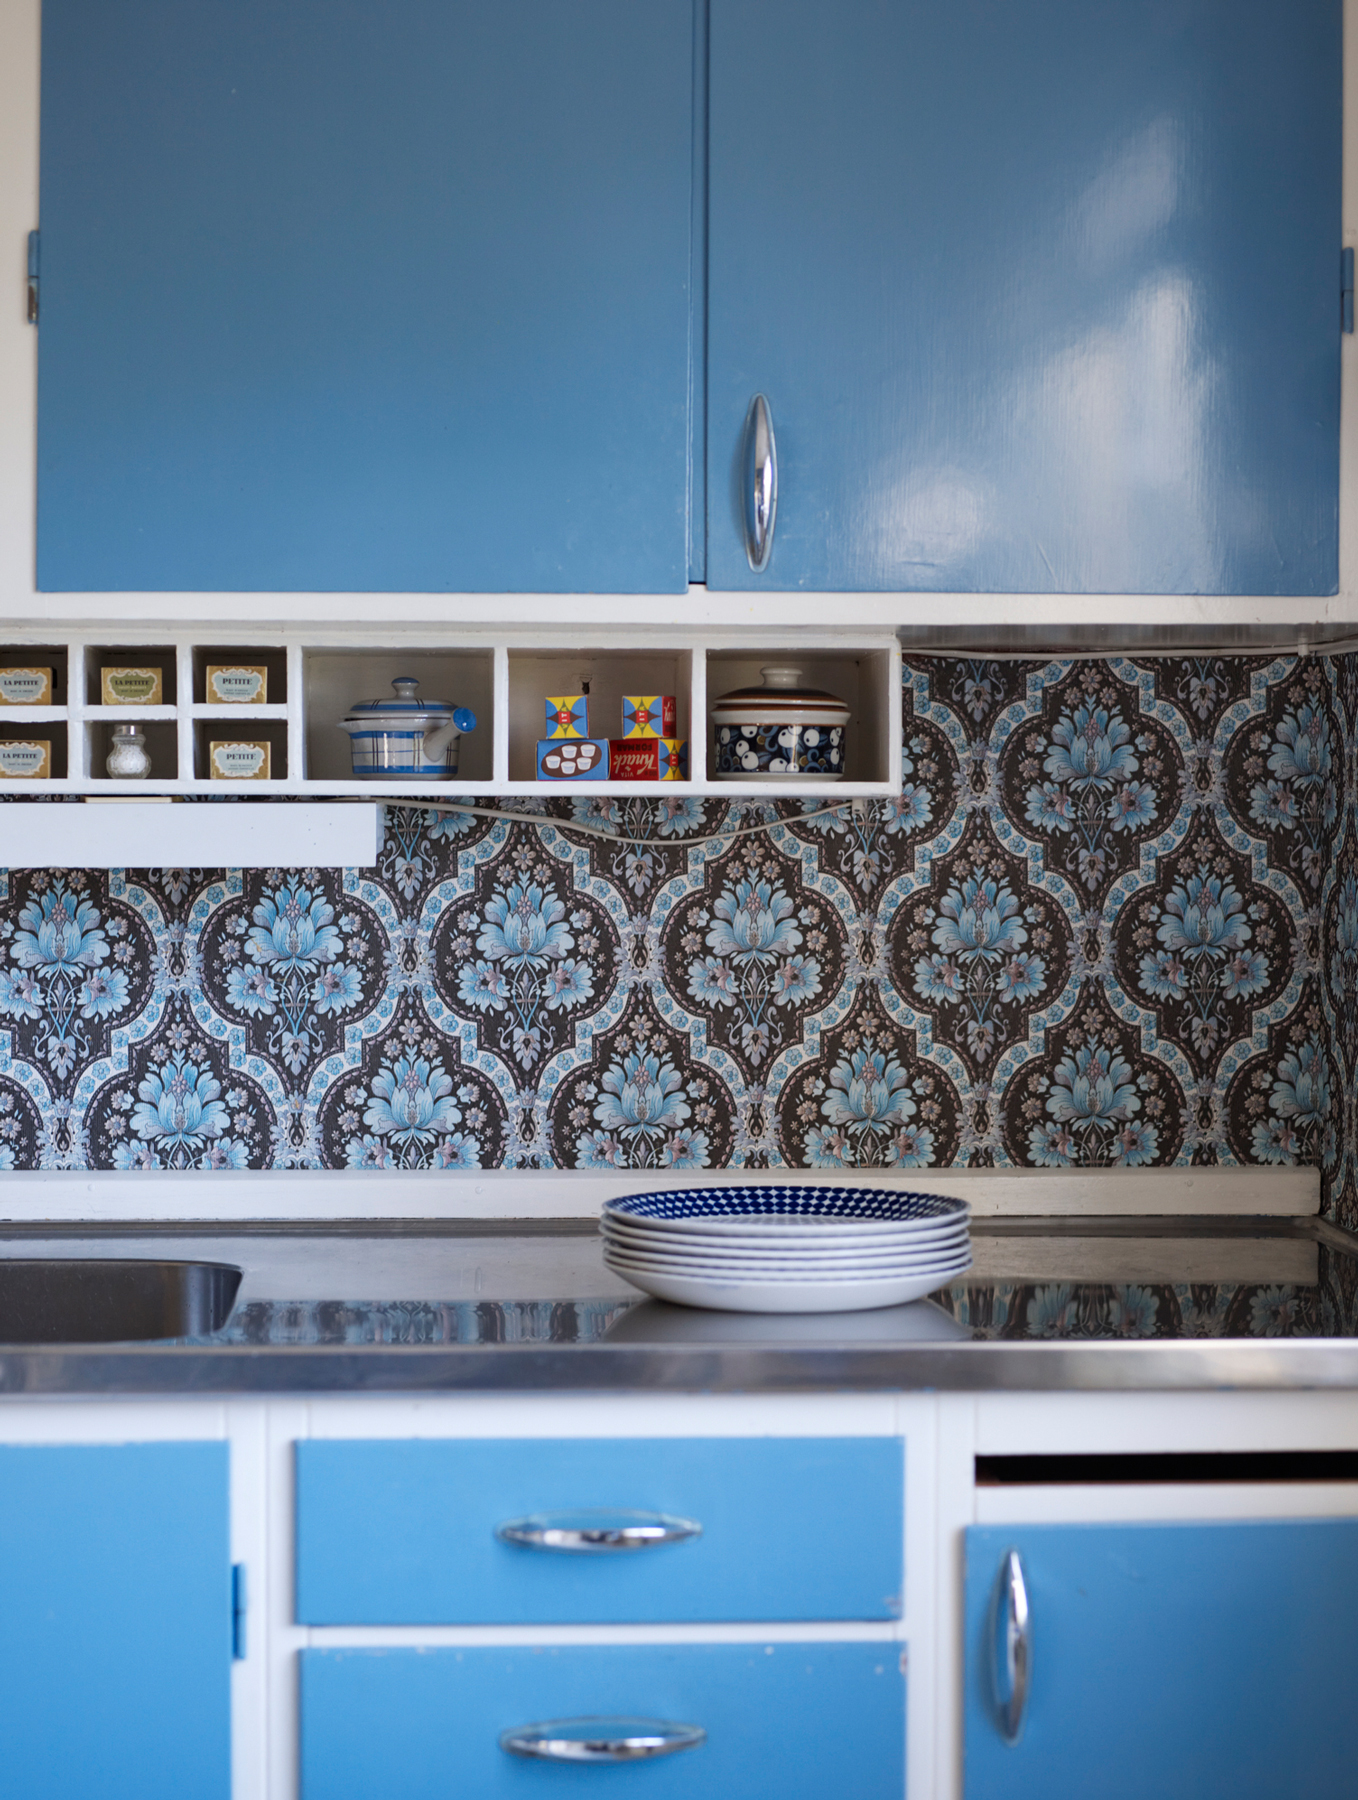 Vintage And Retro Kitchen Decor Ideas To Try Real Simple - Retro-kitchen-design-you-never-seen-before